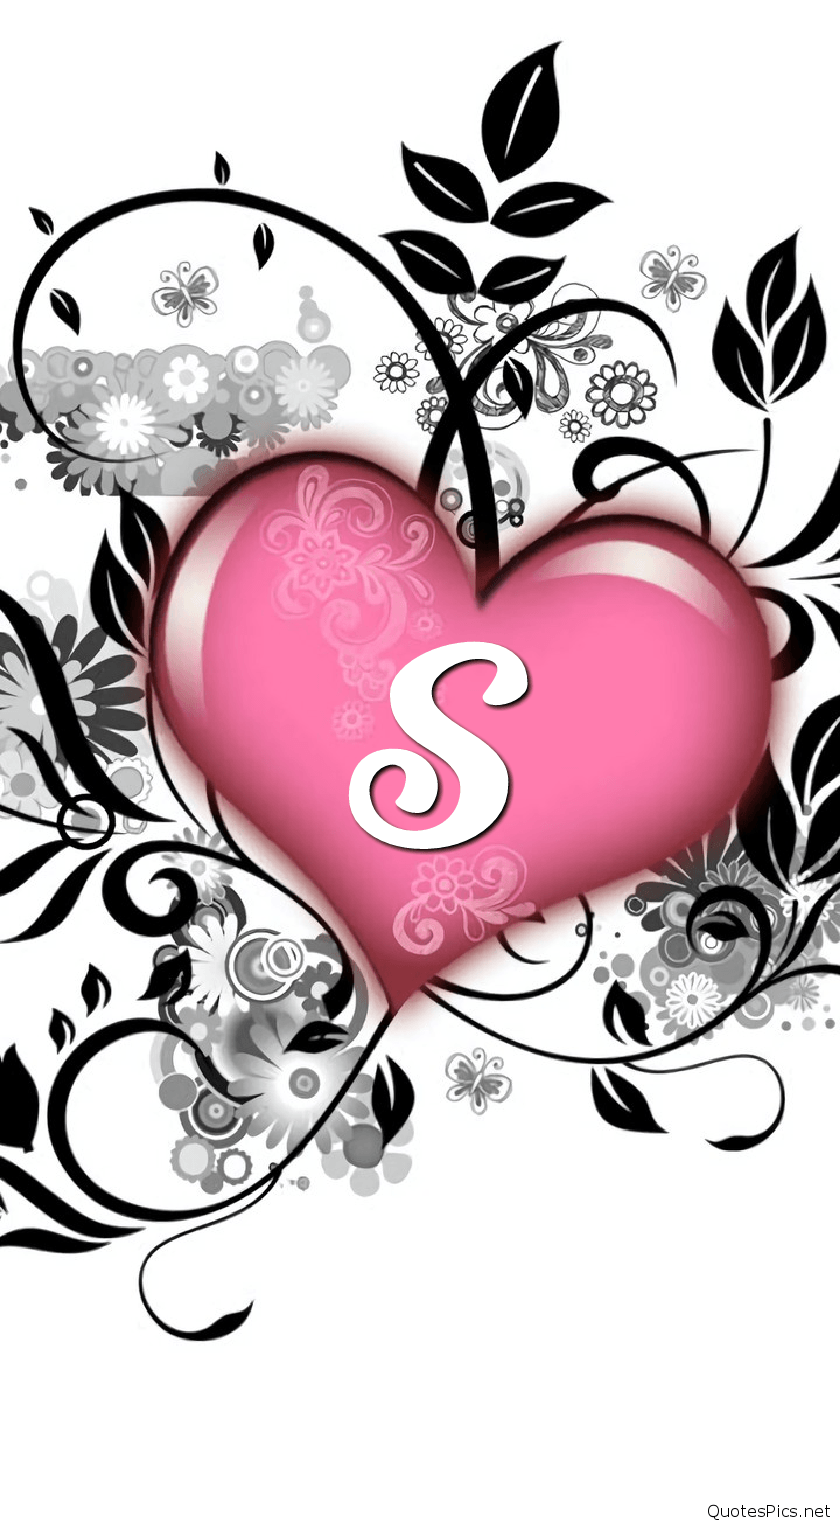 S Love Letter Wallpapers Wallpaper Cave S Letter Images Tattoo Lettering Sticker Bomb Wallpaper